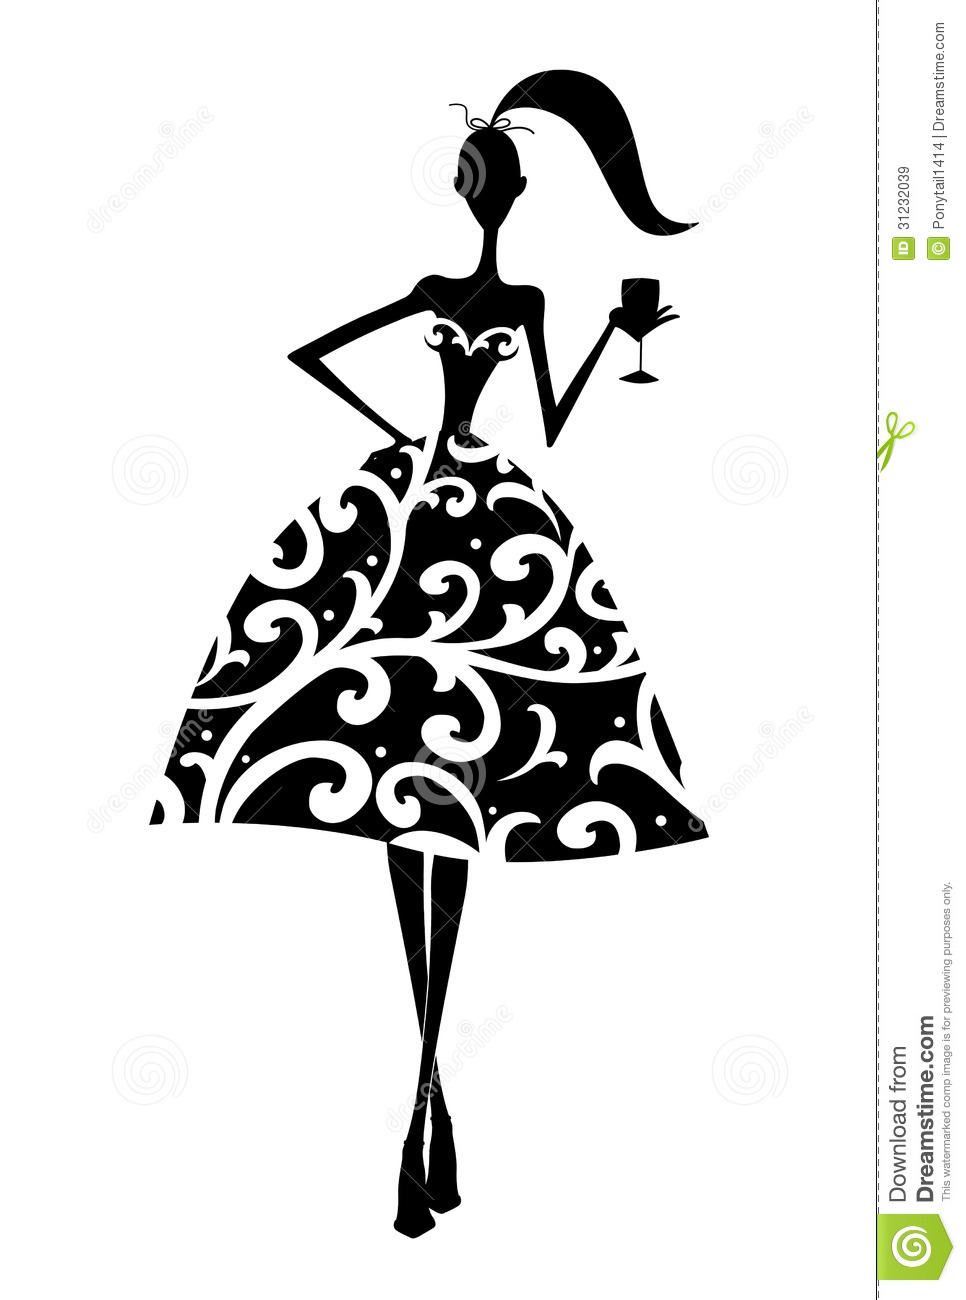 Stock Photo: Silhouette of a Girl at a Party. Image: